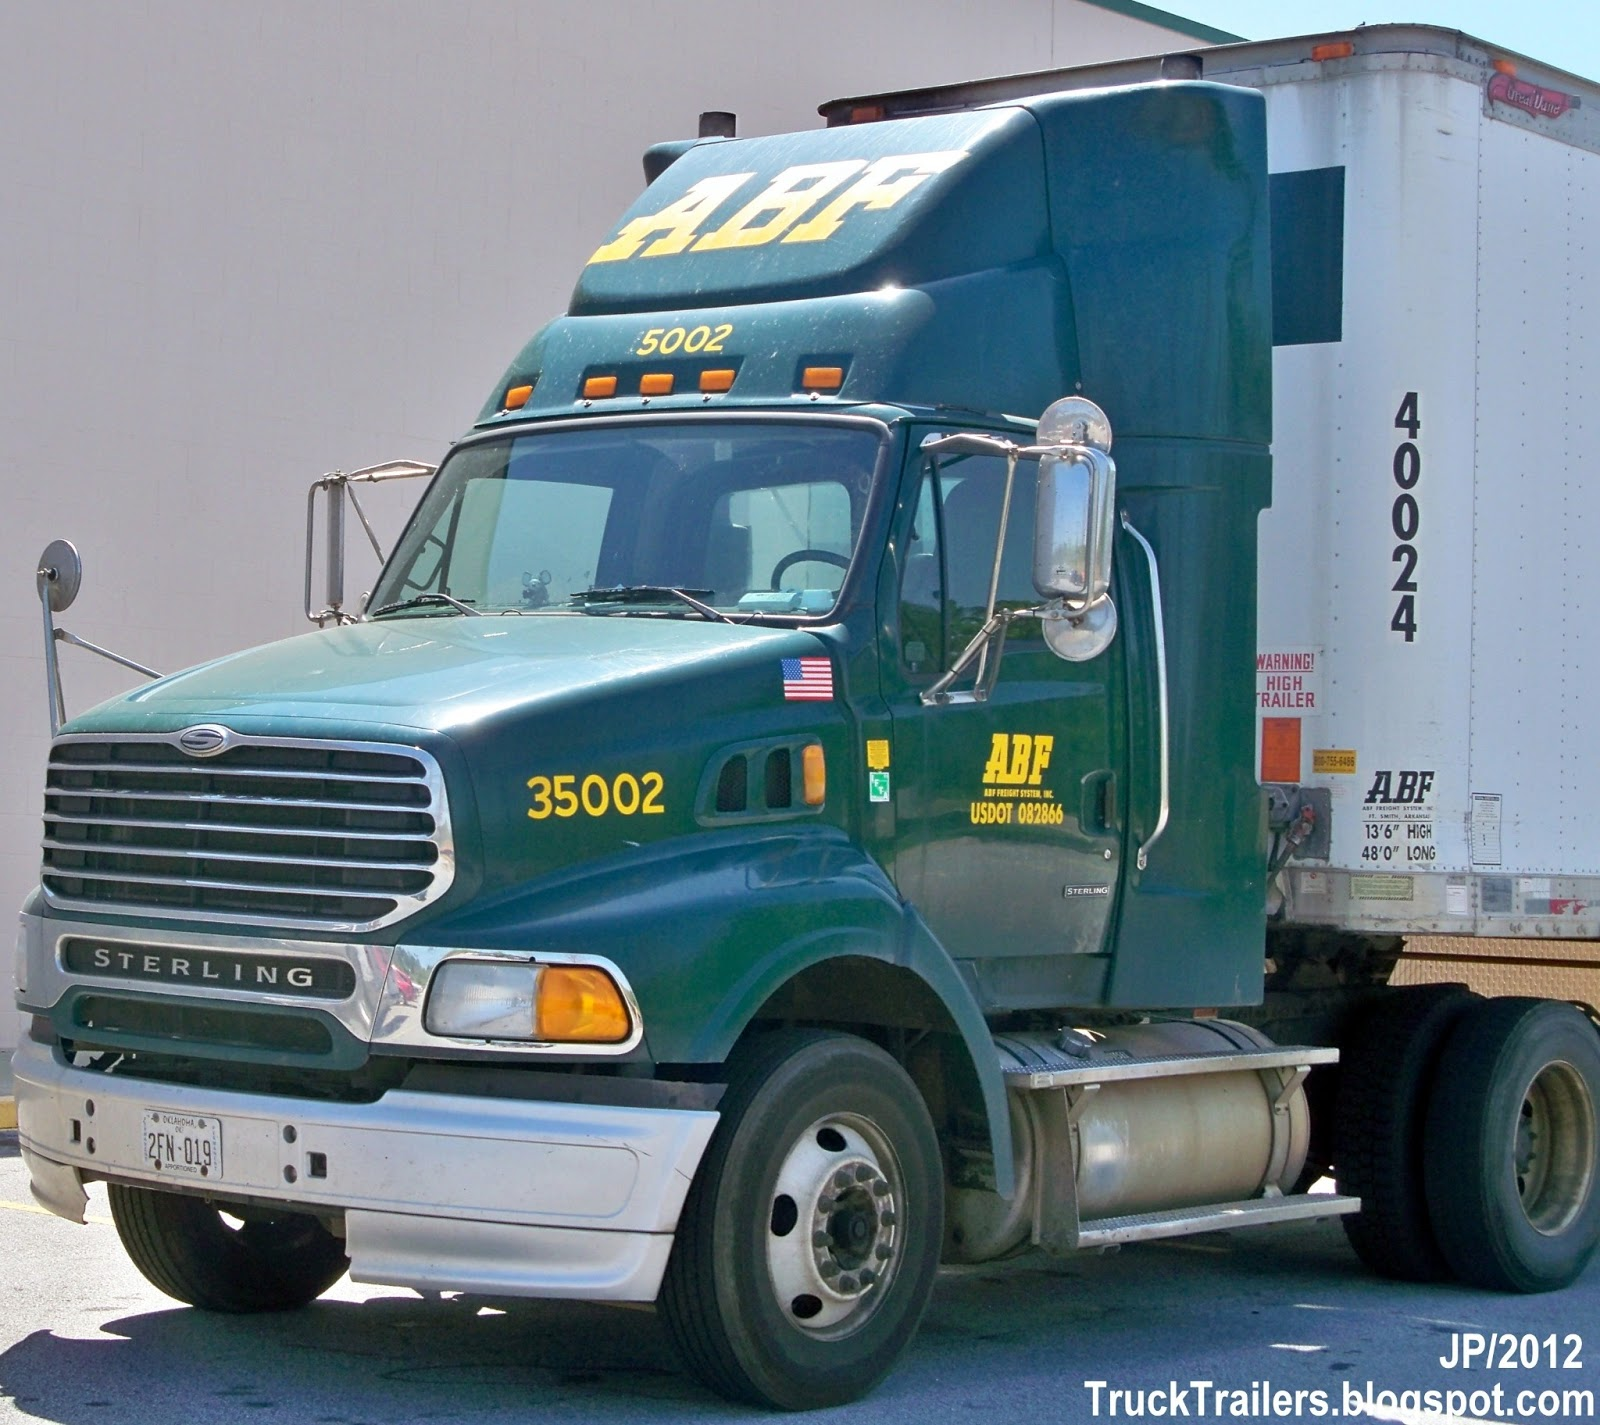 Abf Trucking Photos